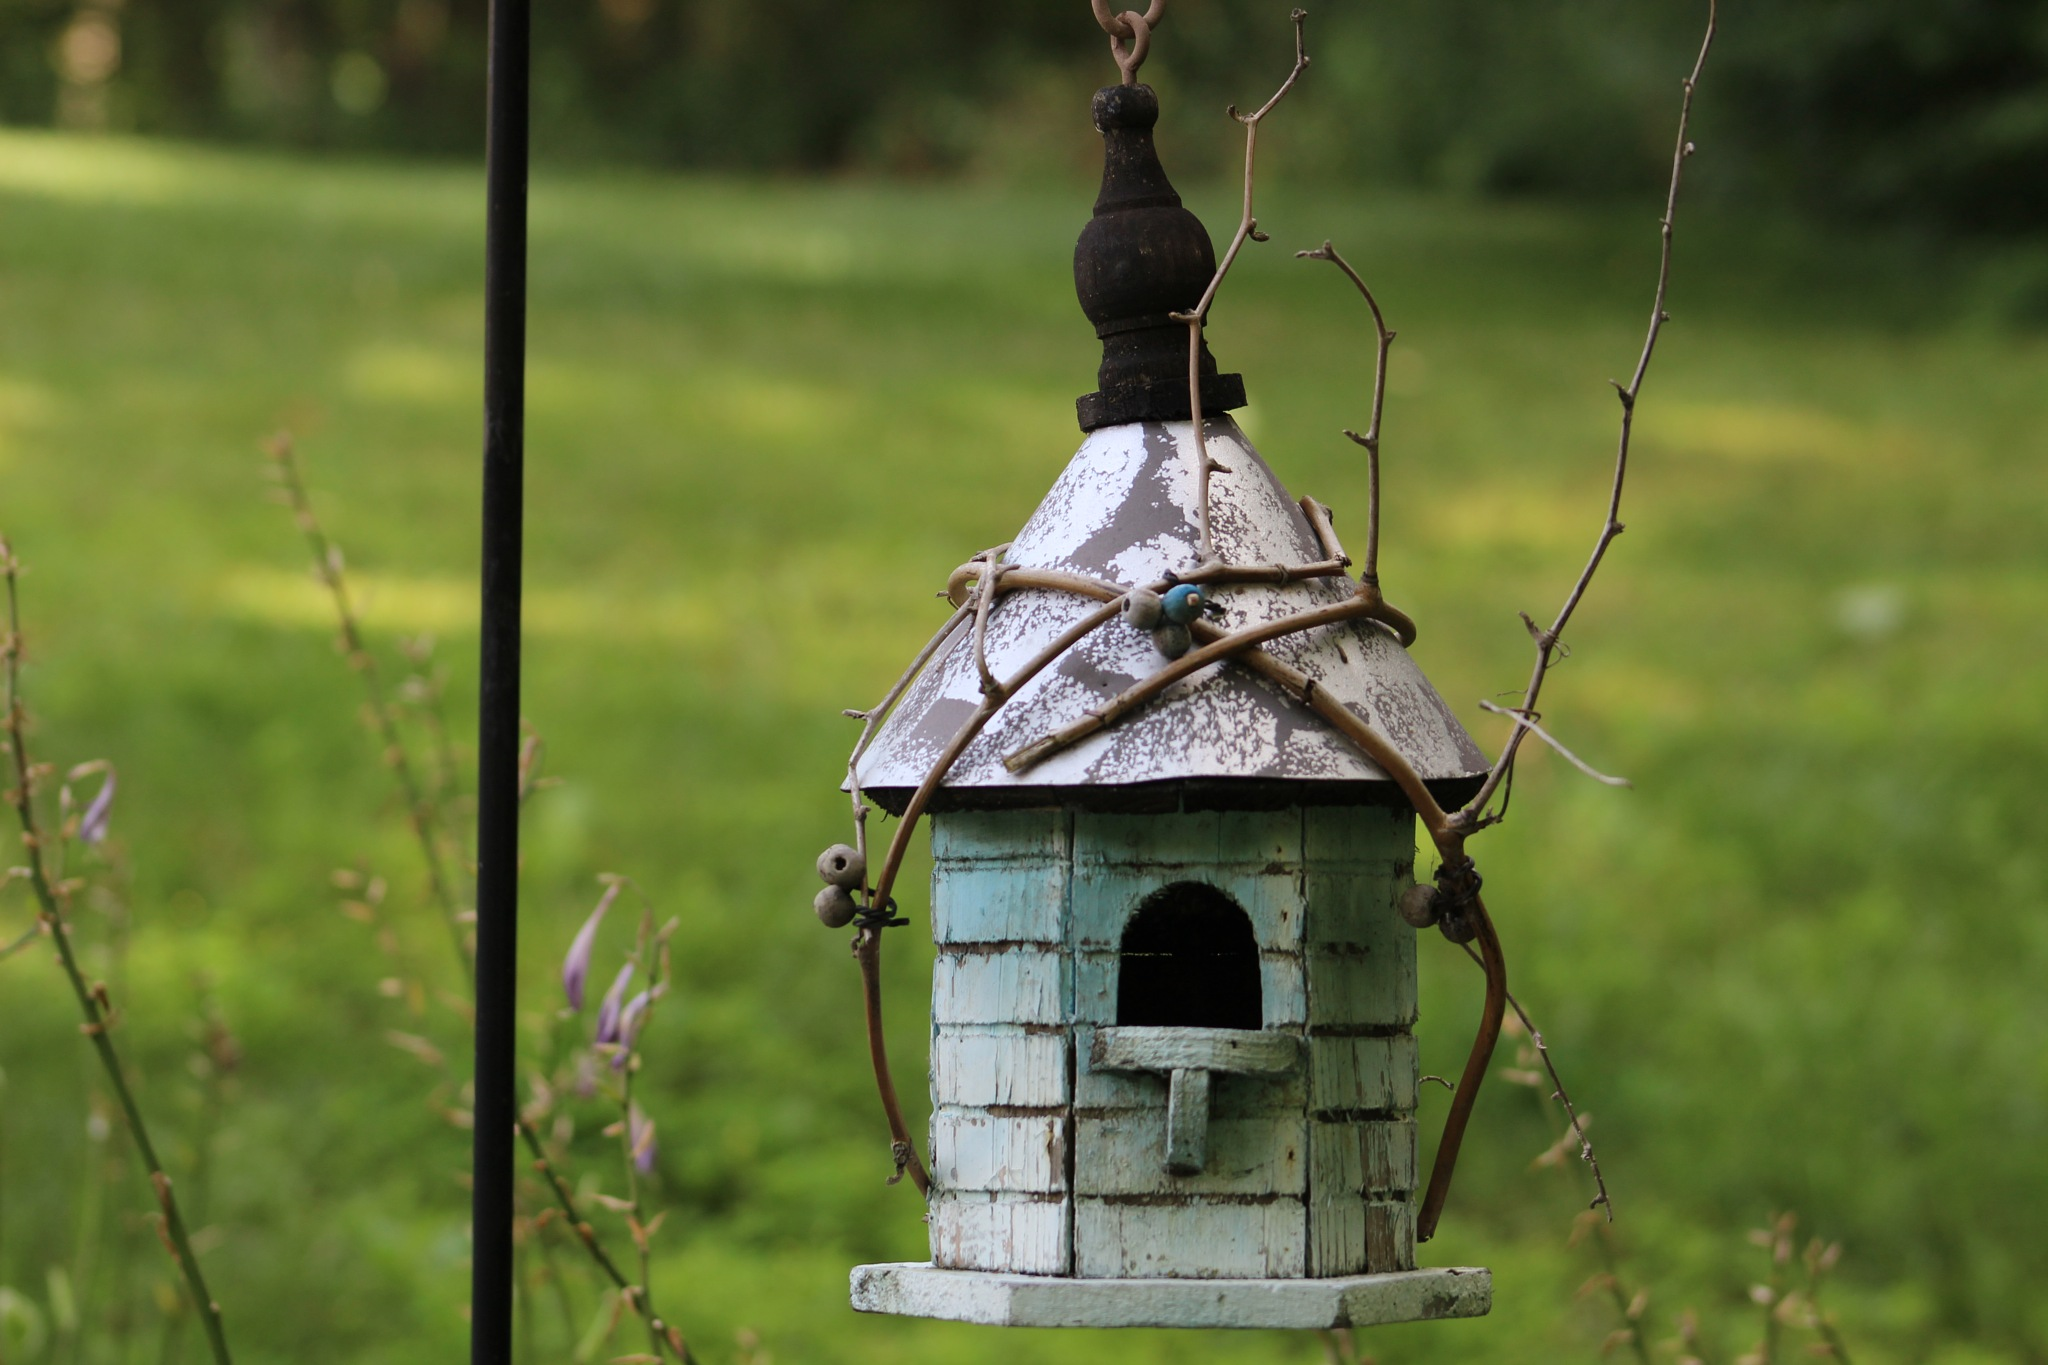 Rustic Chirp by Trena Hambly